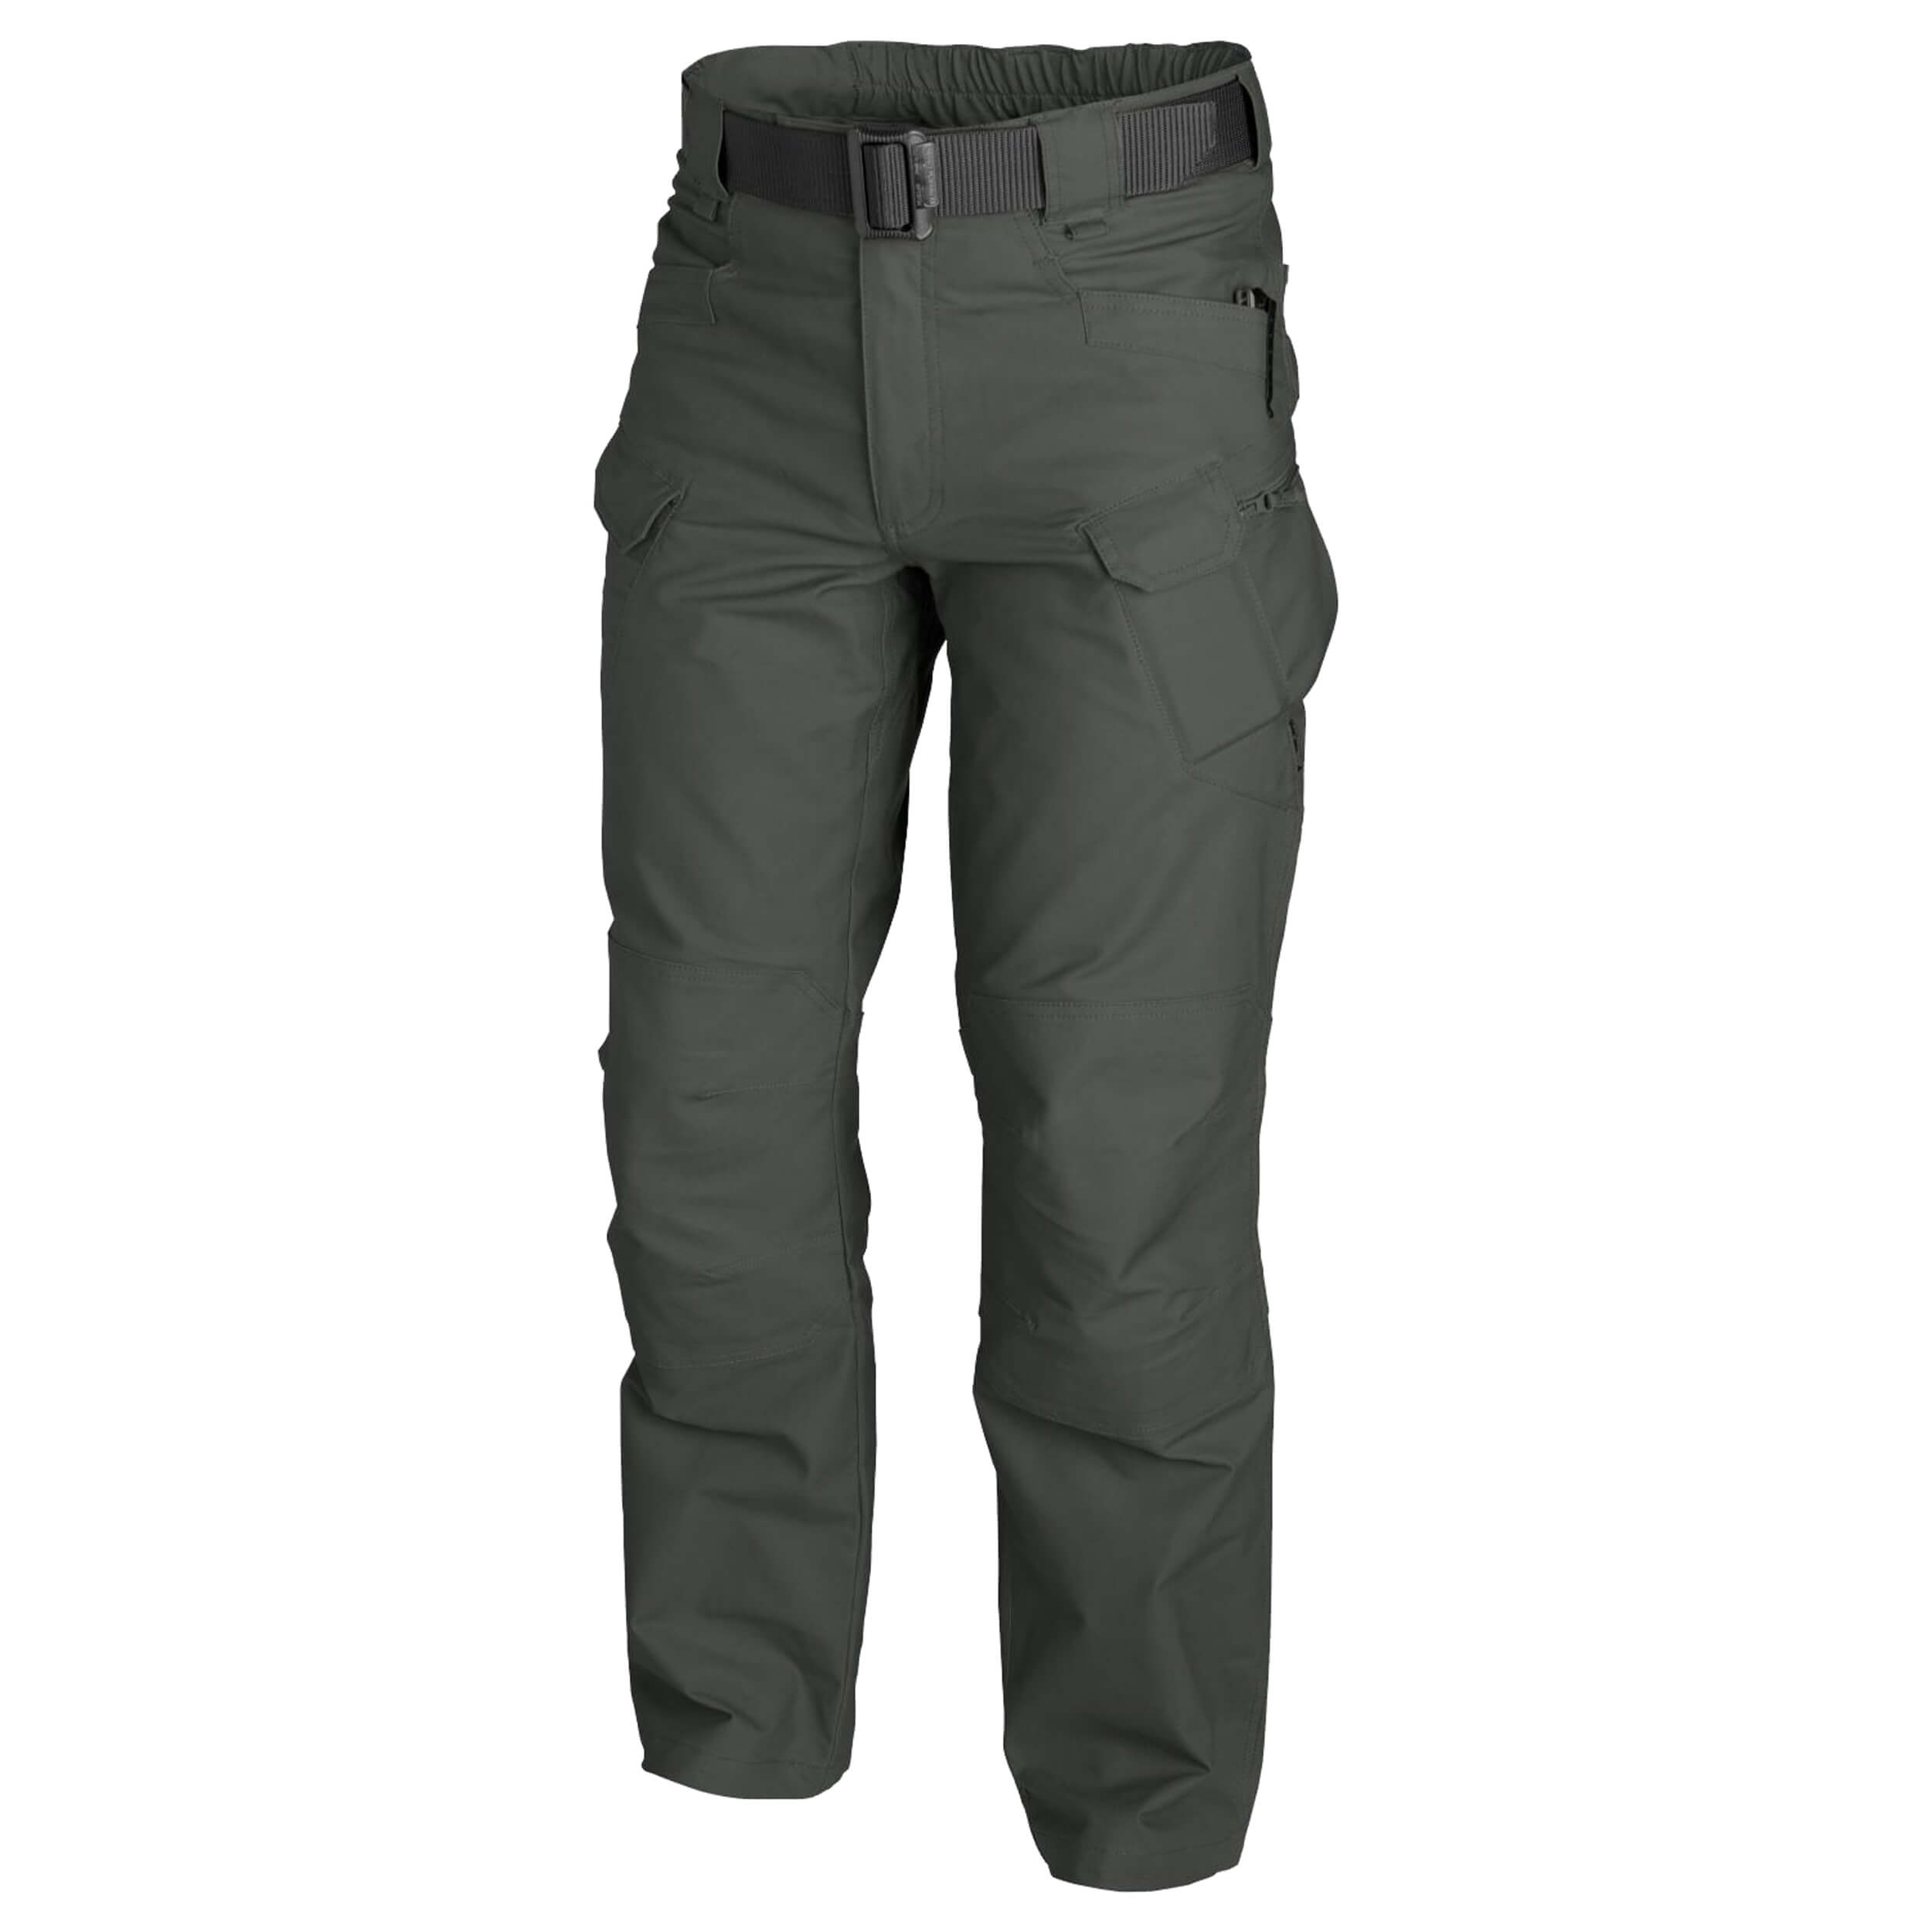 Helikon-Tex Urban Tactical Pants PolyCotton Canvas Jungle Green